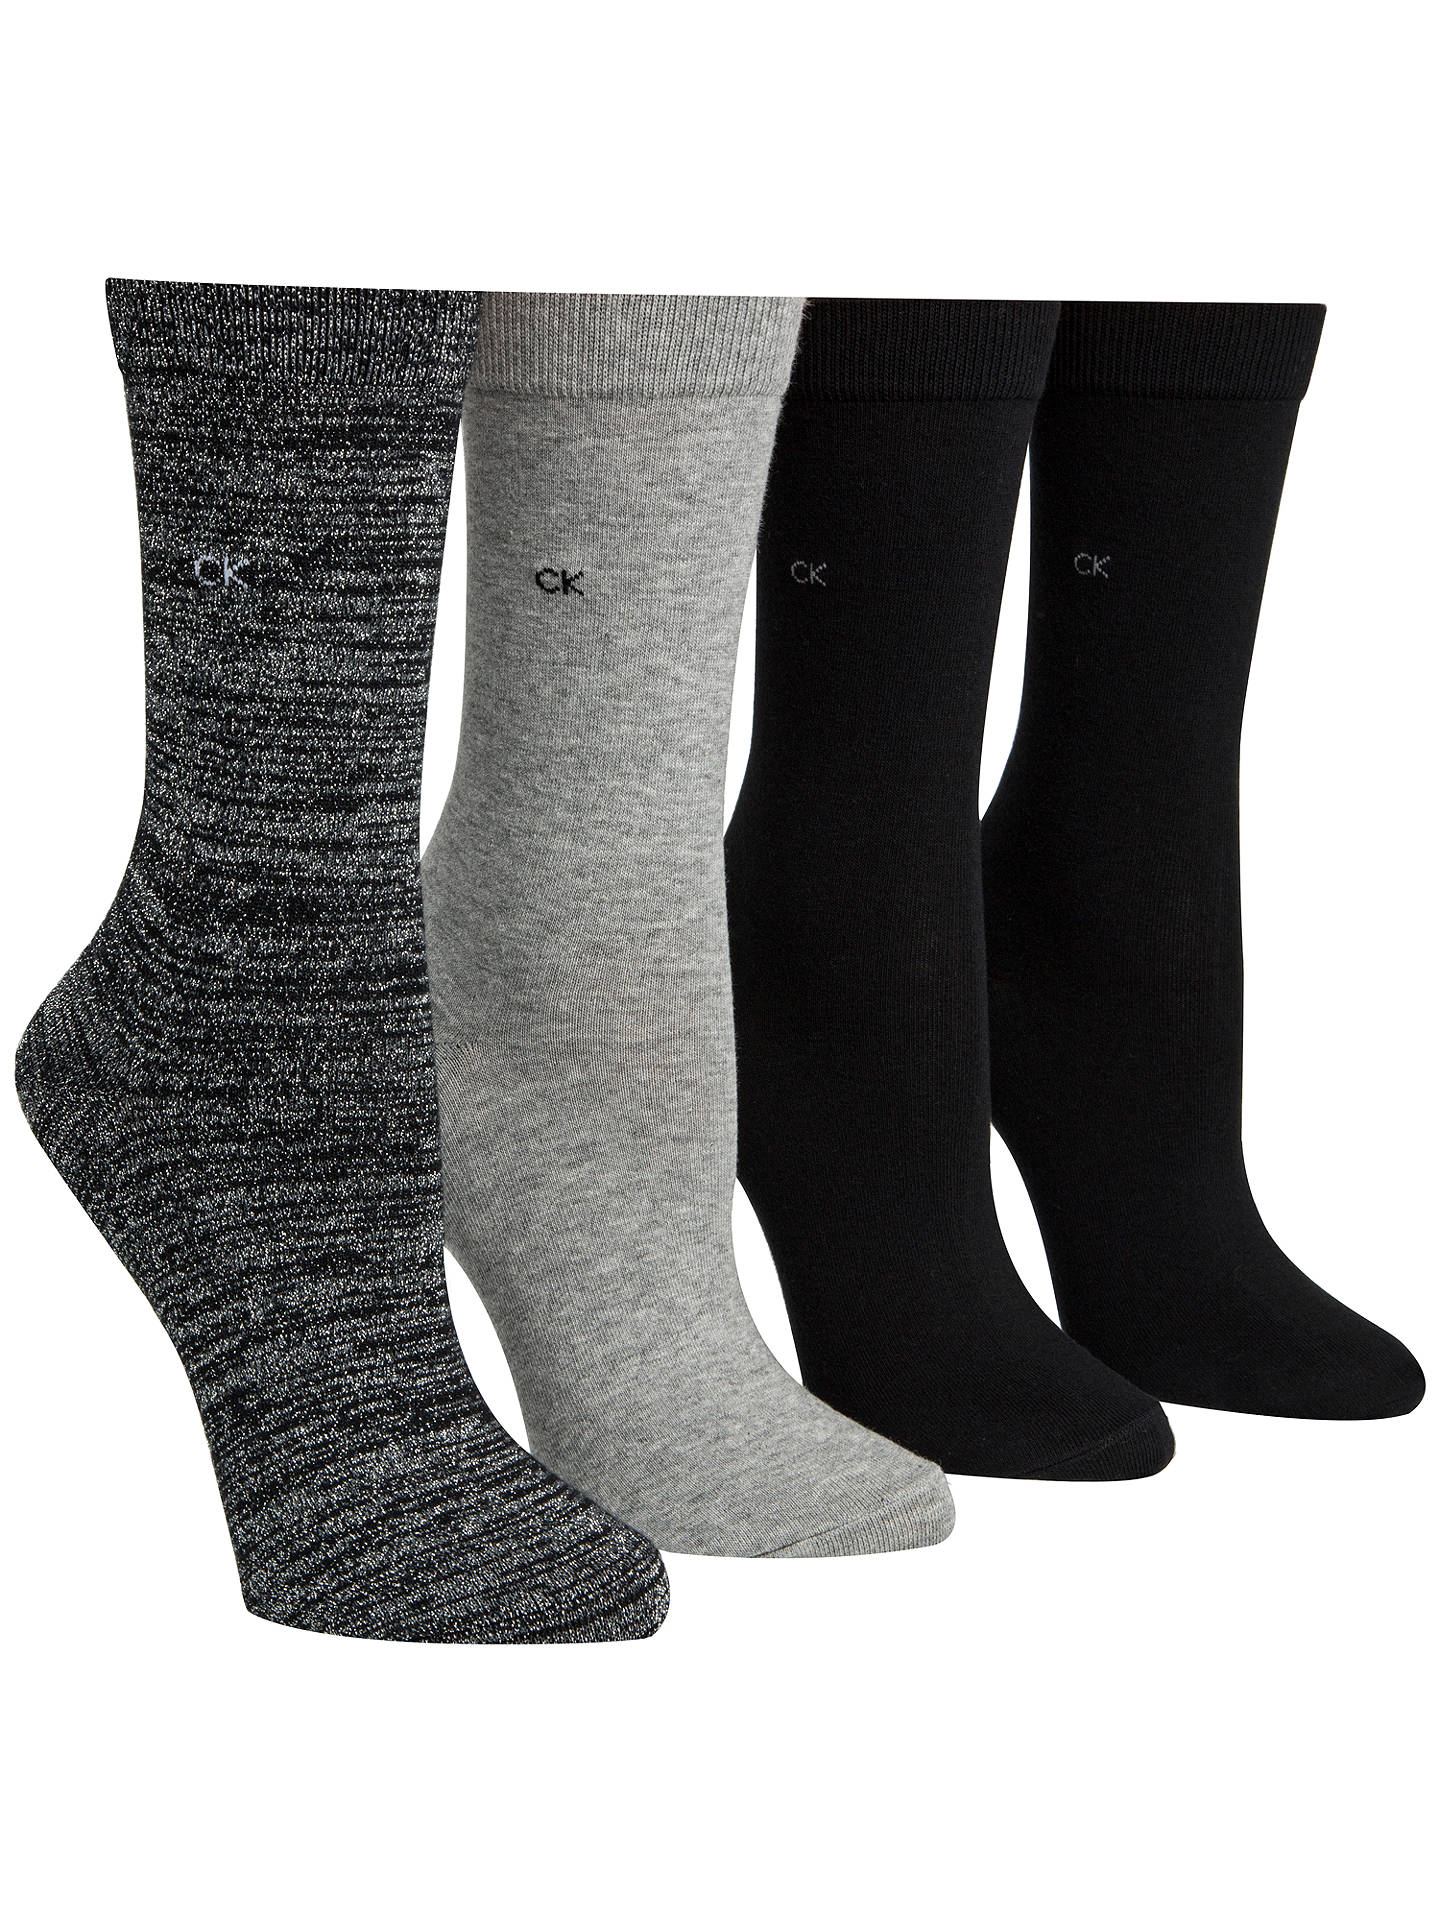 BuyCalvin Klein Holiday Sparkle Gift Wrap Ankle Socks, Pack of 4, Black/Grey Online at johnlewis.com